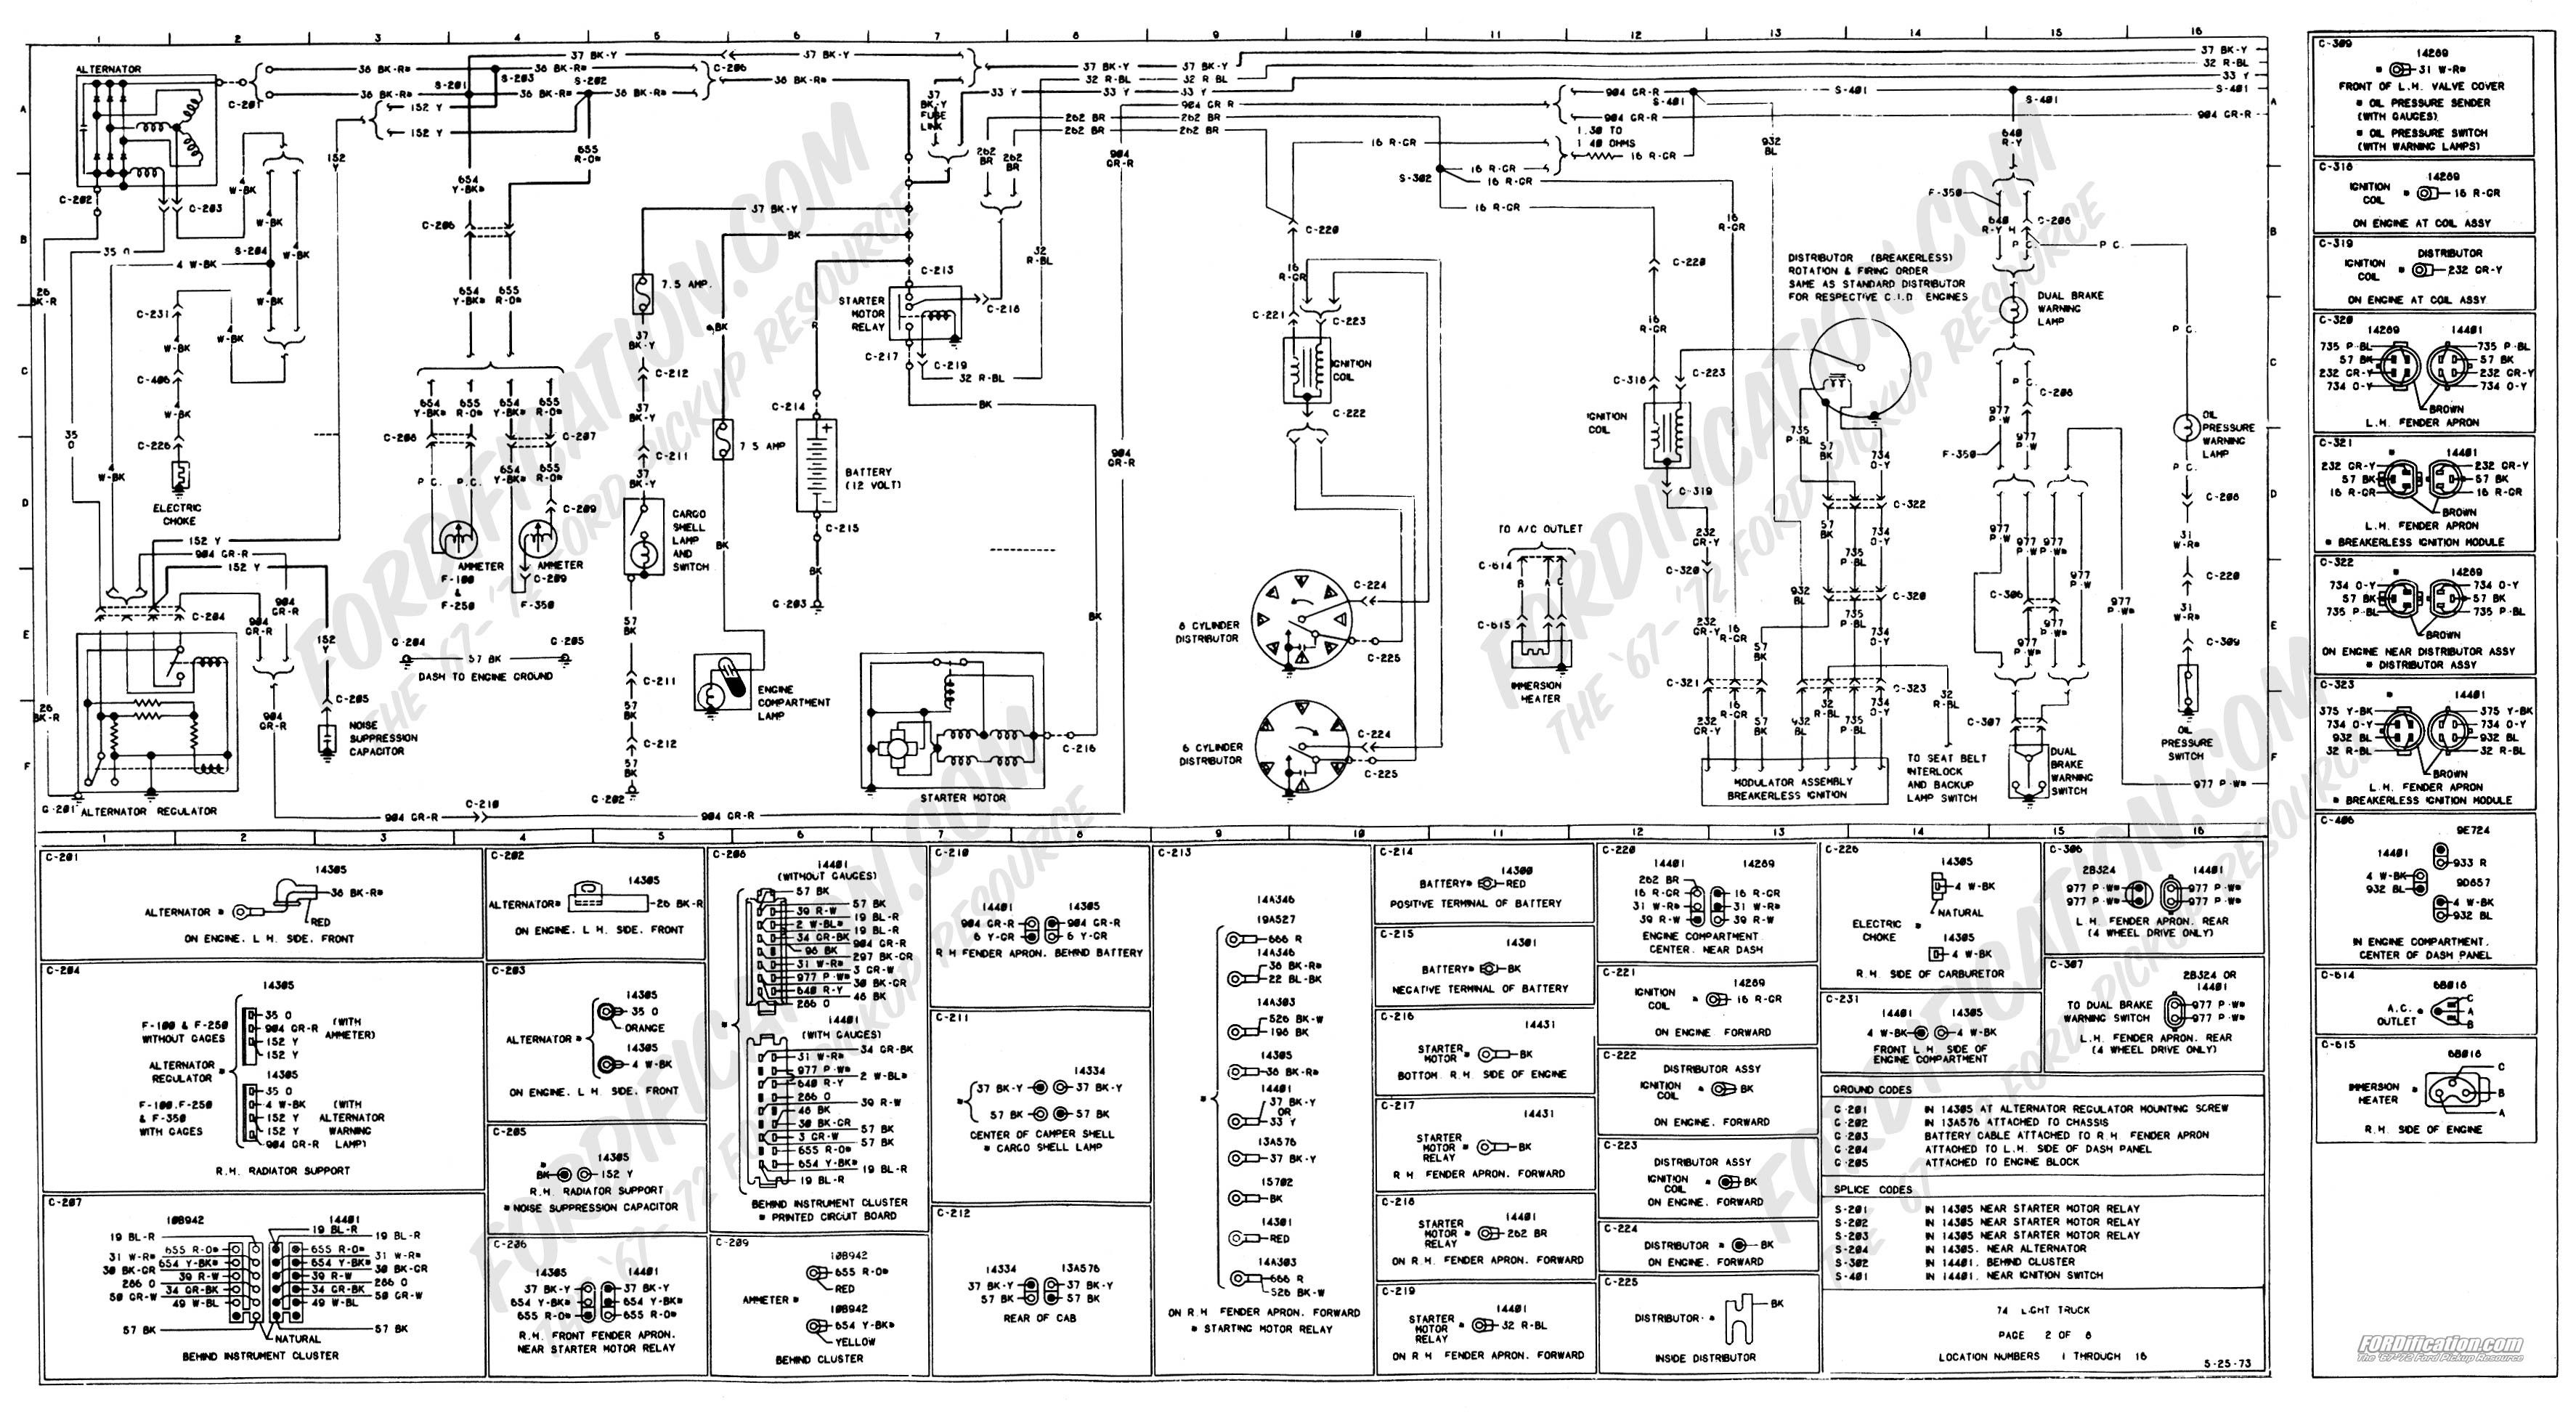 Wiring Diagram On ford 650 in 2020 | Ford, Diagram, Diy ...